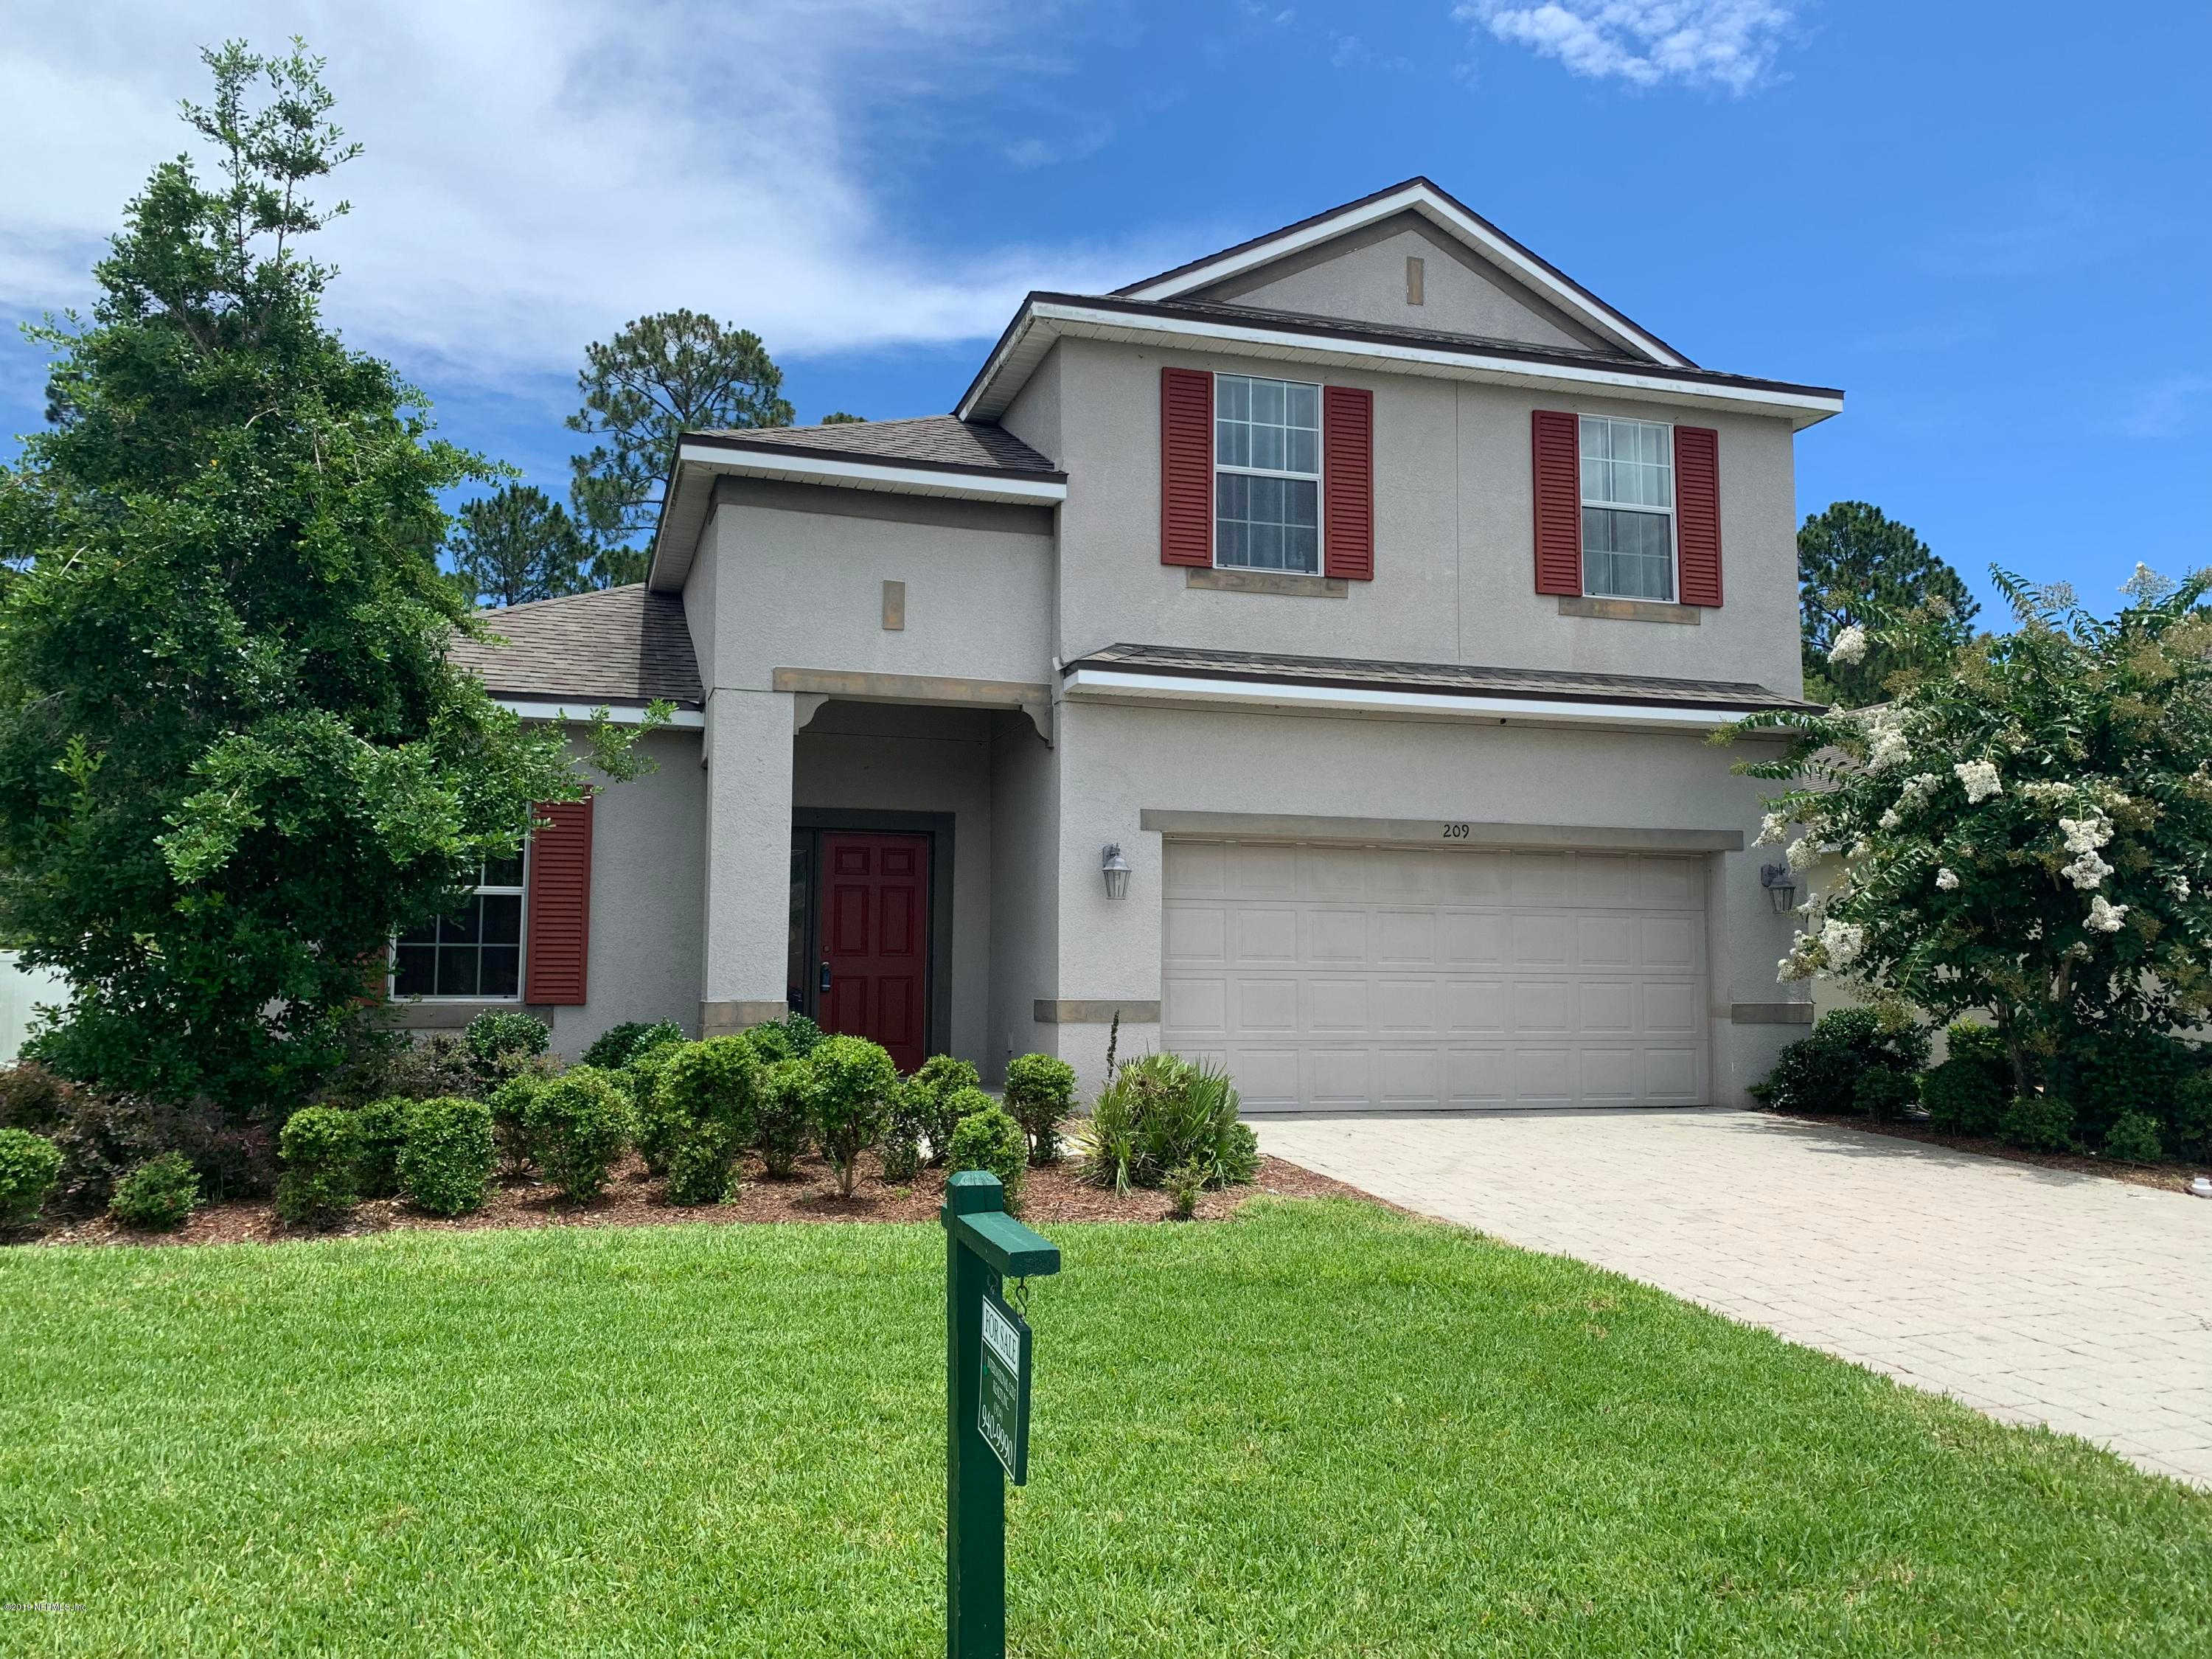 209 Los Caminos St, St Augustine, FL 32095 now has a new price of $289,000!